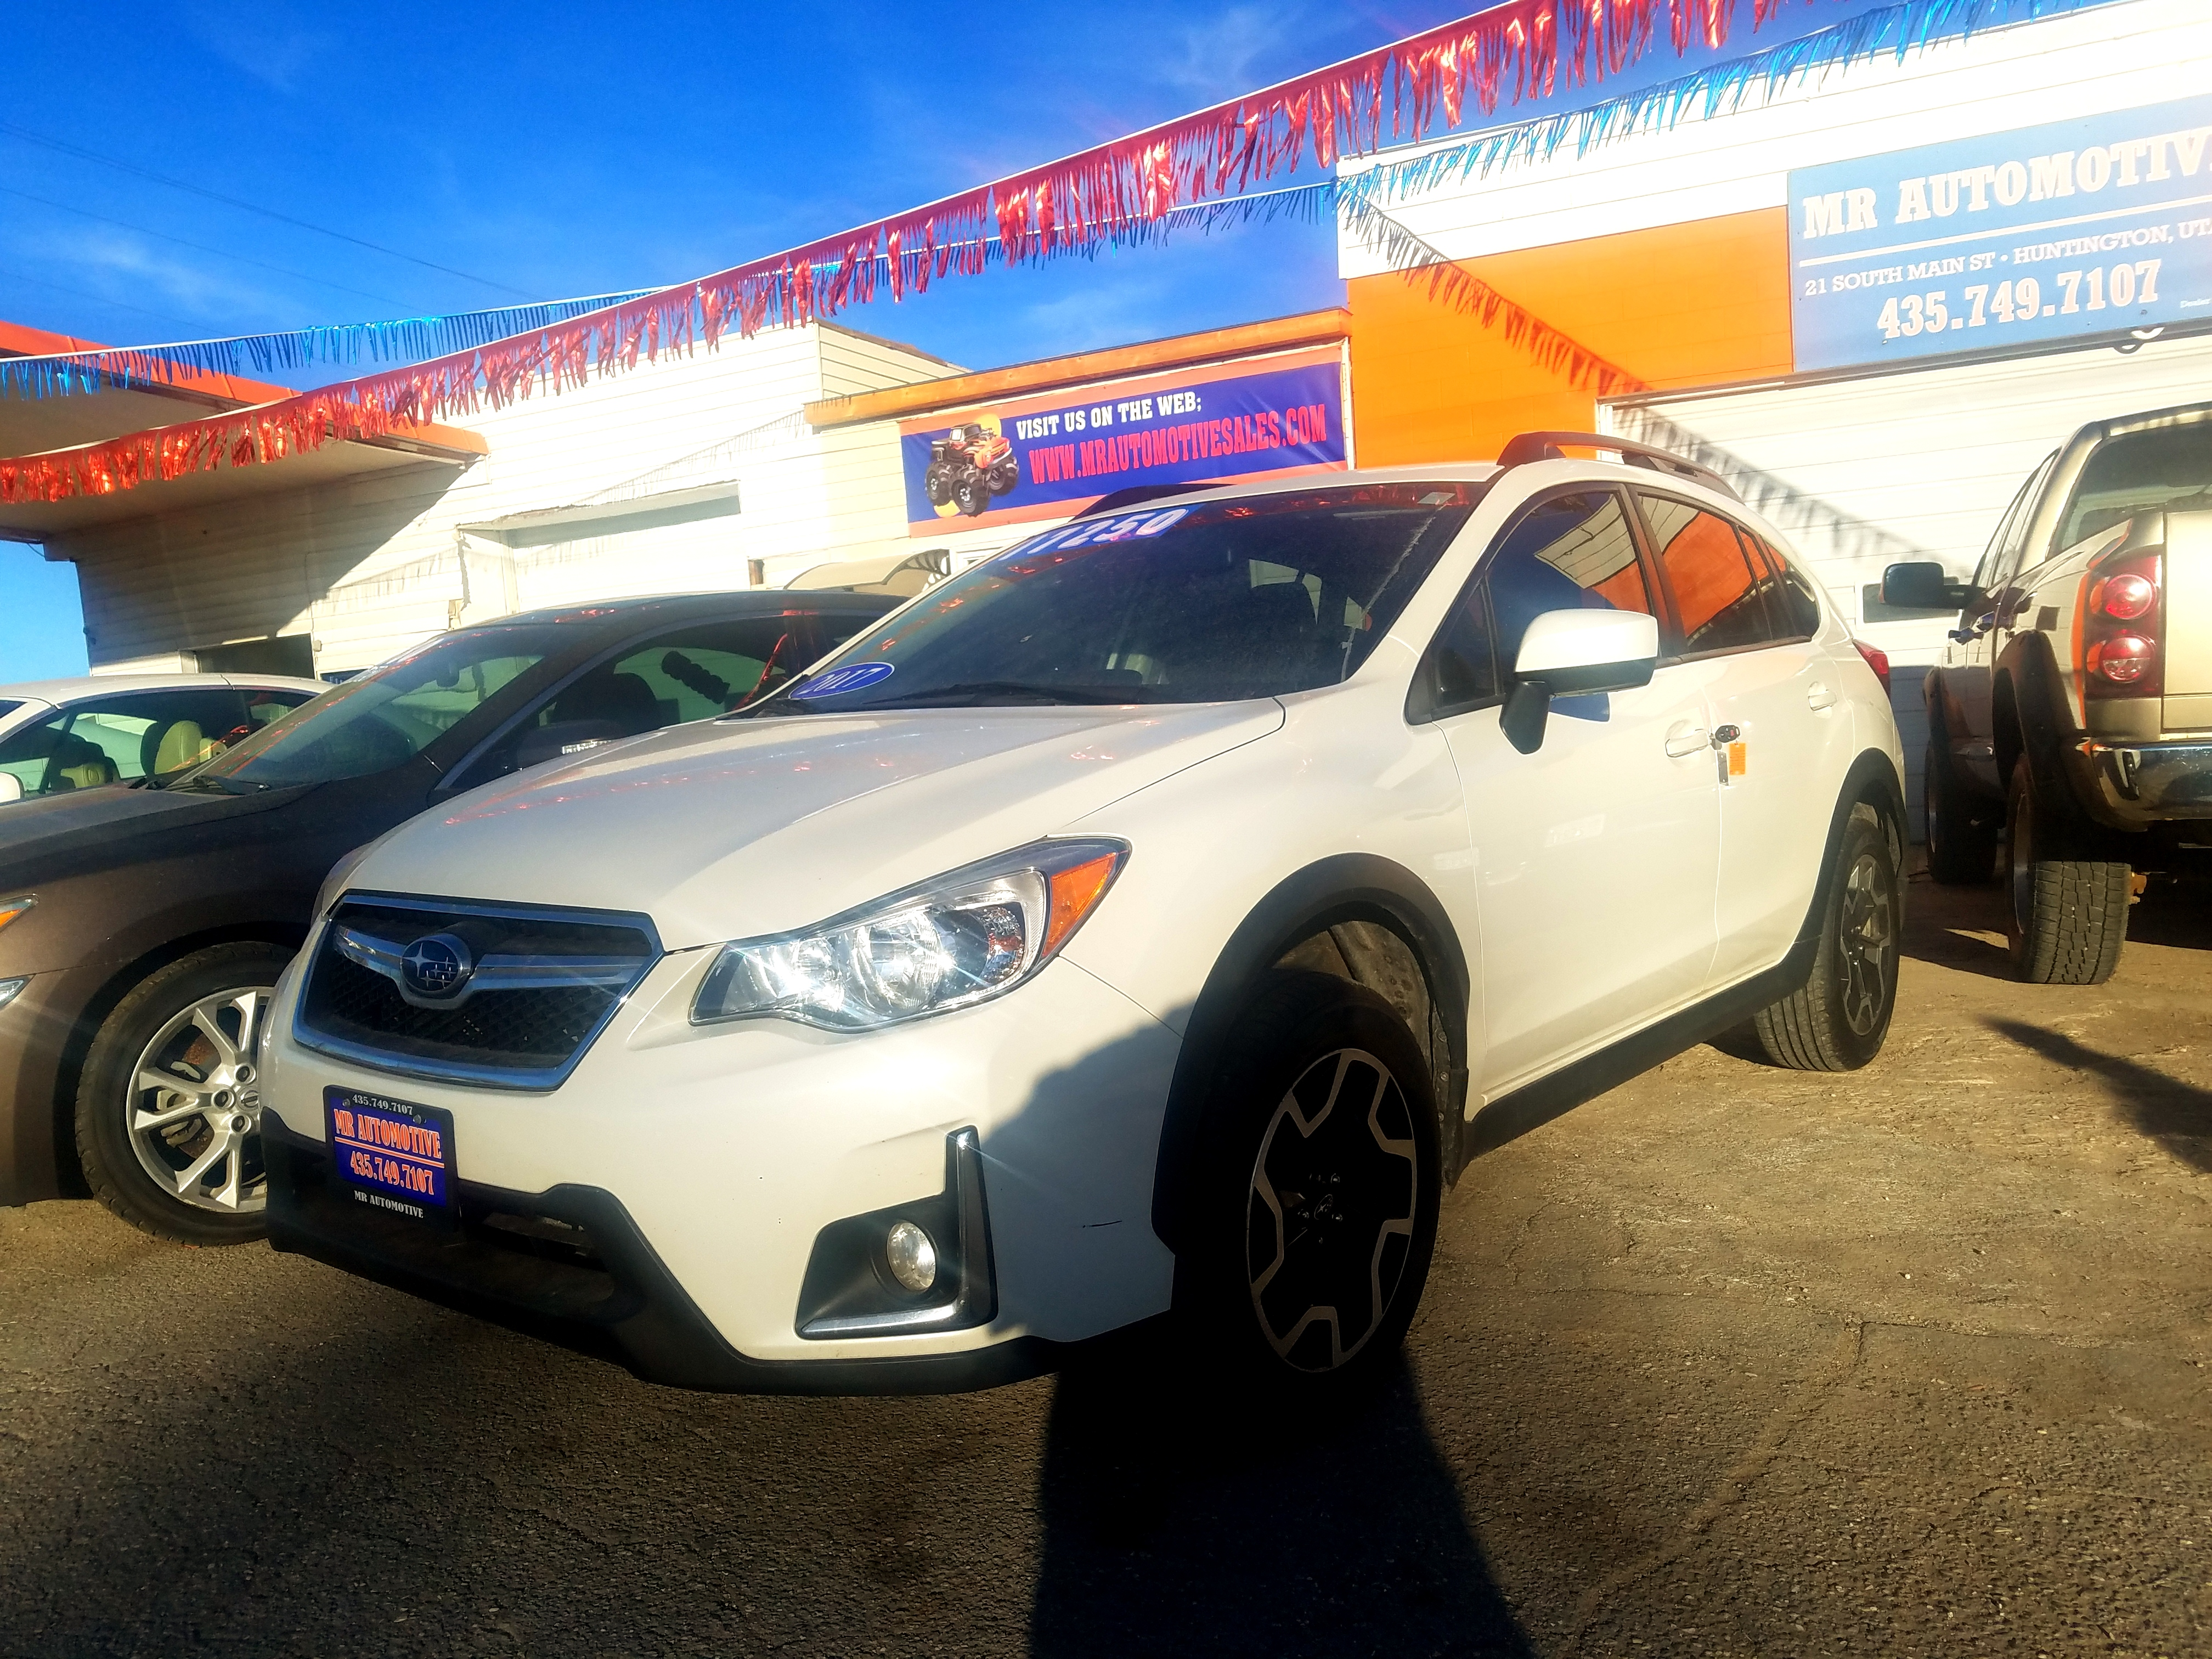 2017 SUBURU CROSSTREK LIMITED $17,000